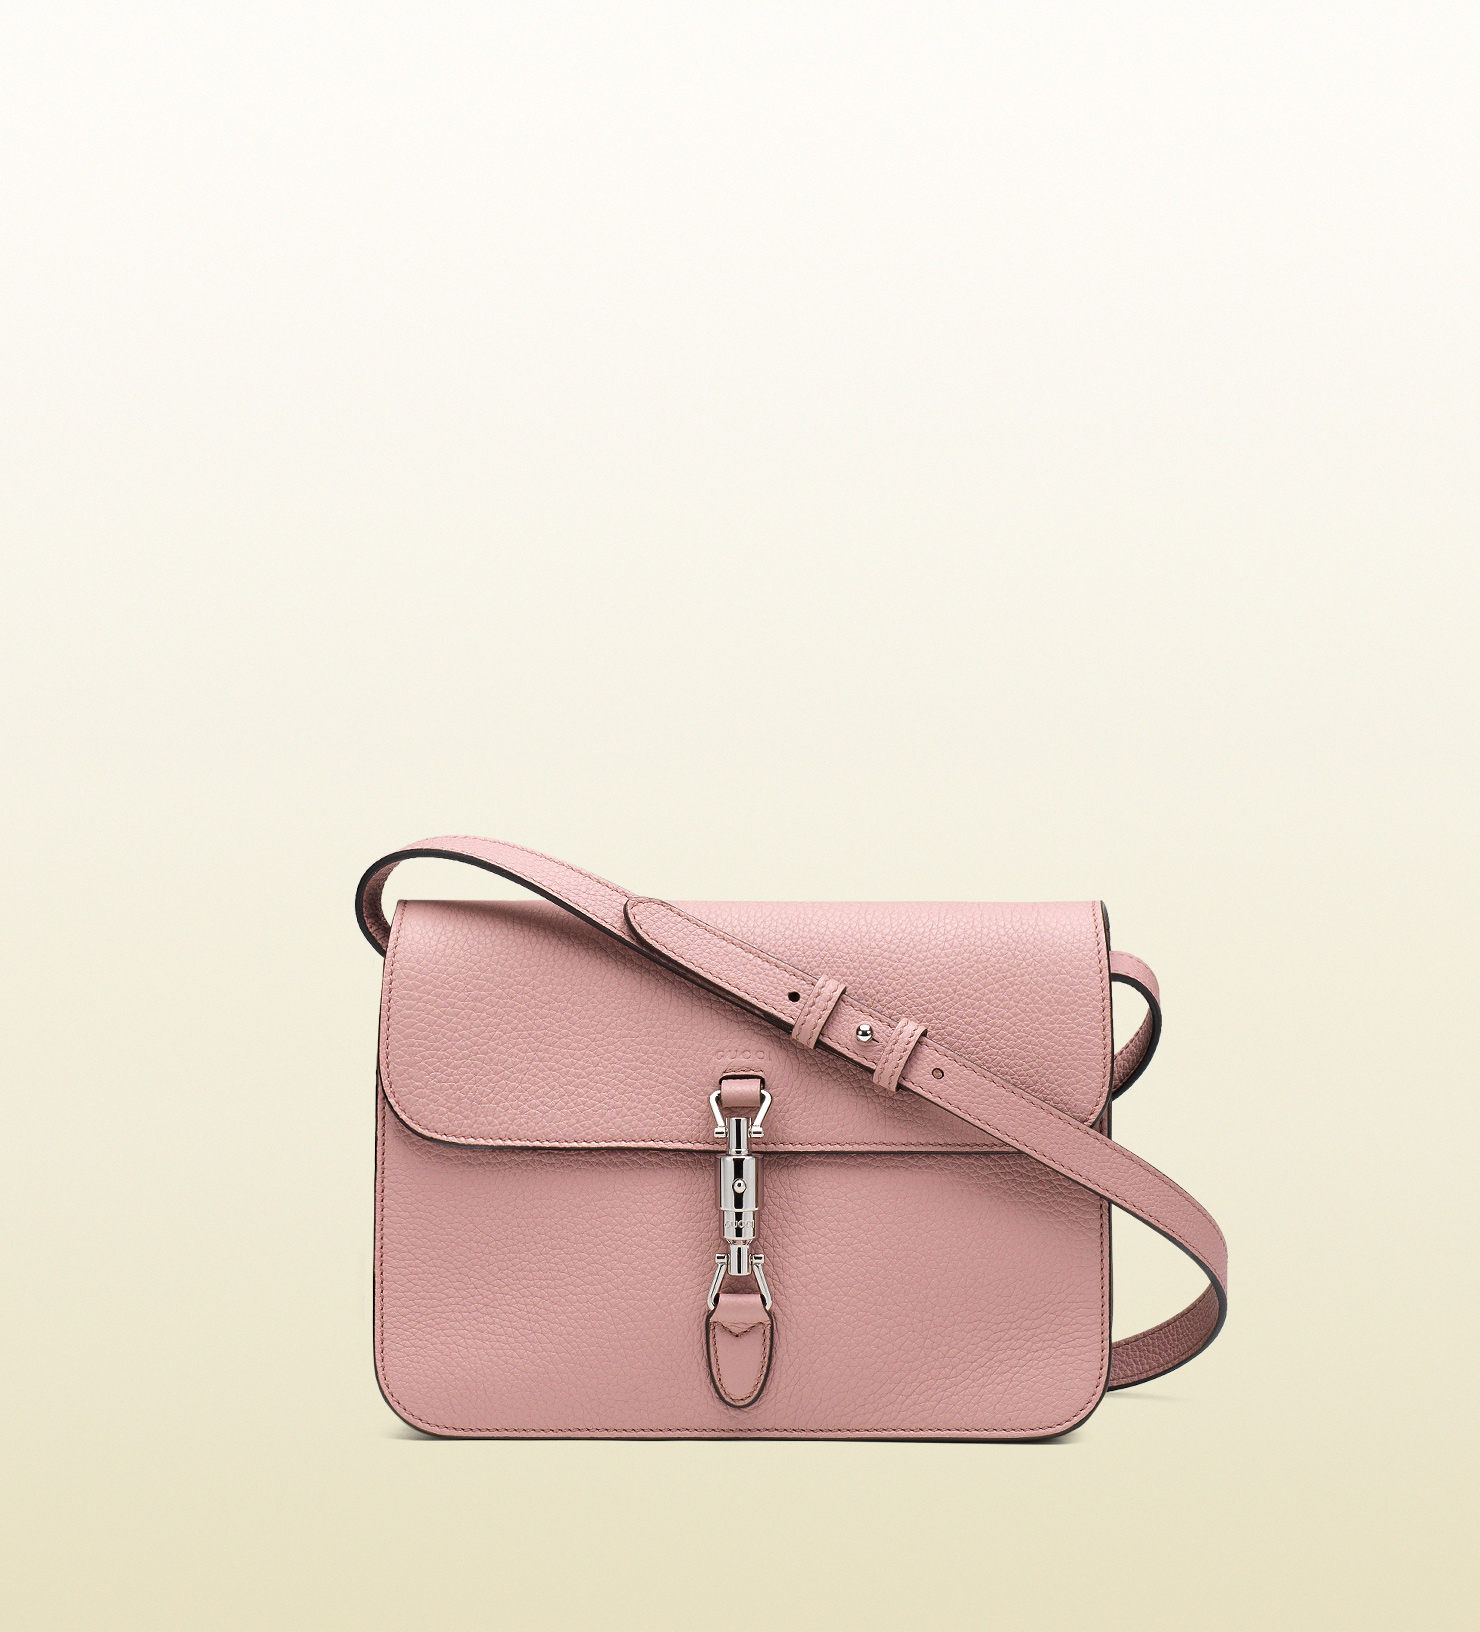 20a73587a69 Gucci Jackie Soft Leather Flap Shoulder Bag in Pink - Lyst